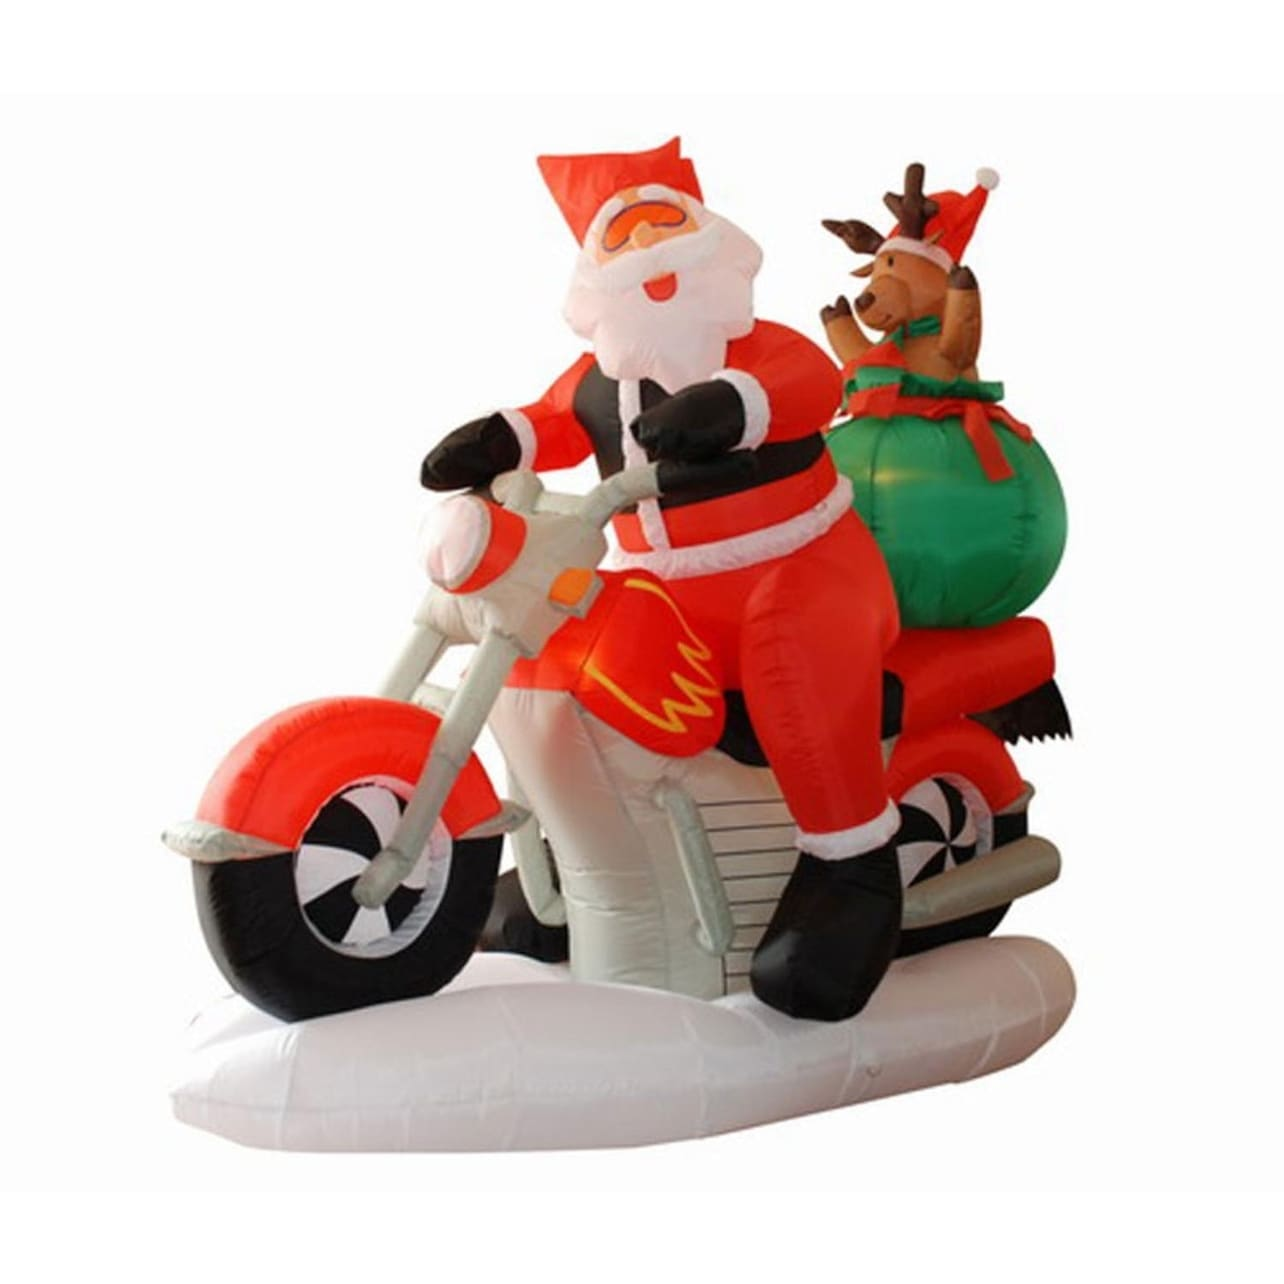 Lb International 6.5' Inflatable Santa Claus on Motorcycl...